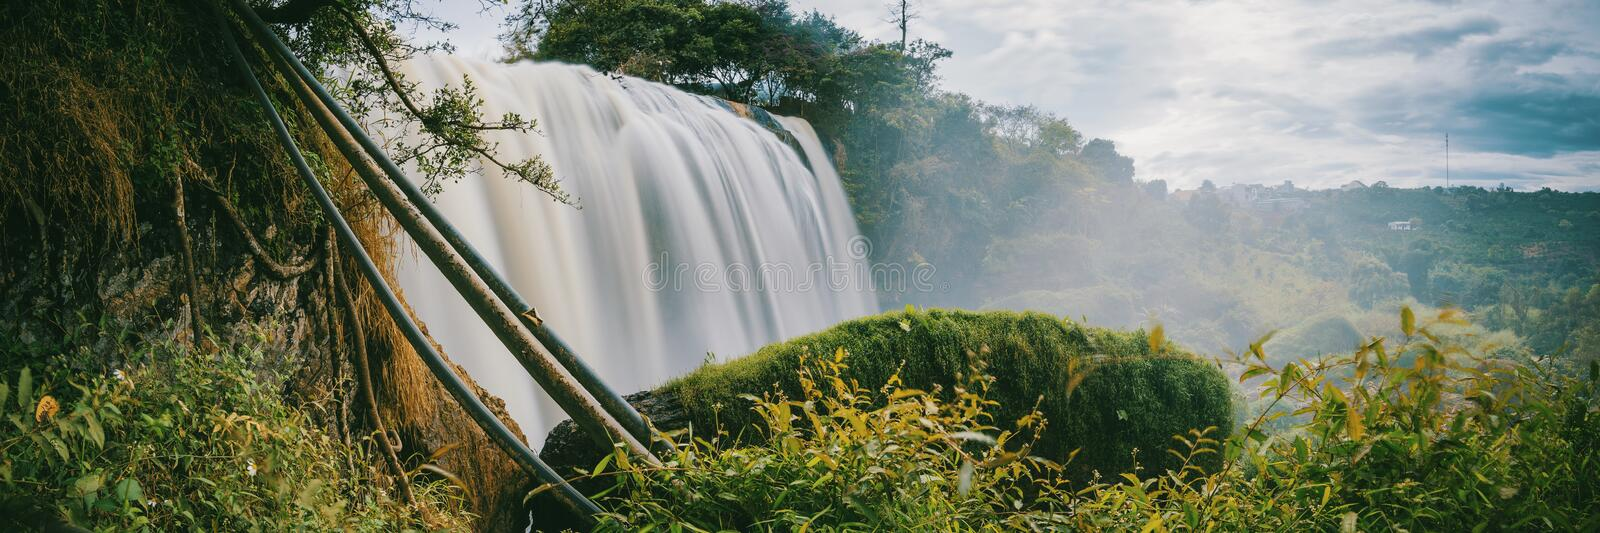 Timelapse Photo of Water Falls Between Trees stock photography